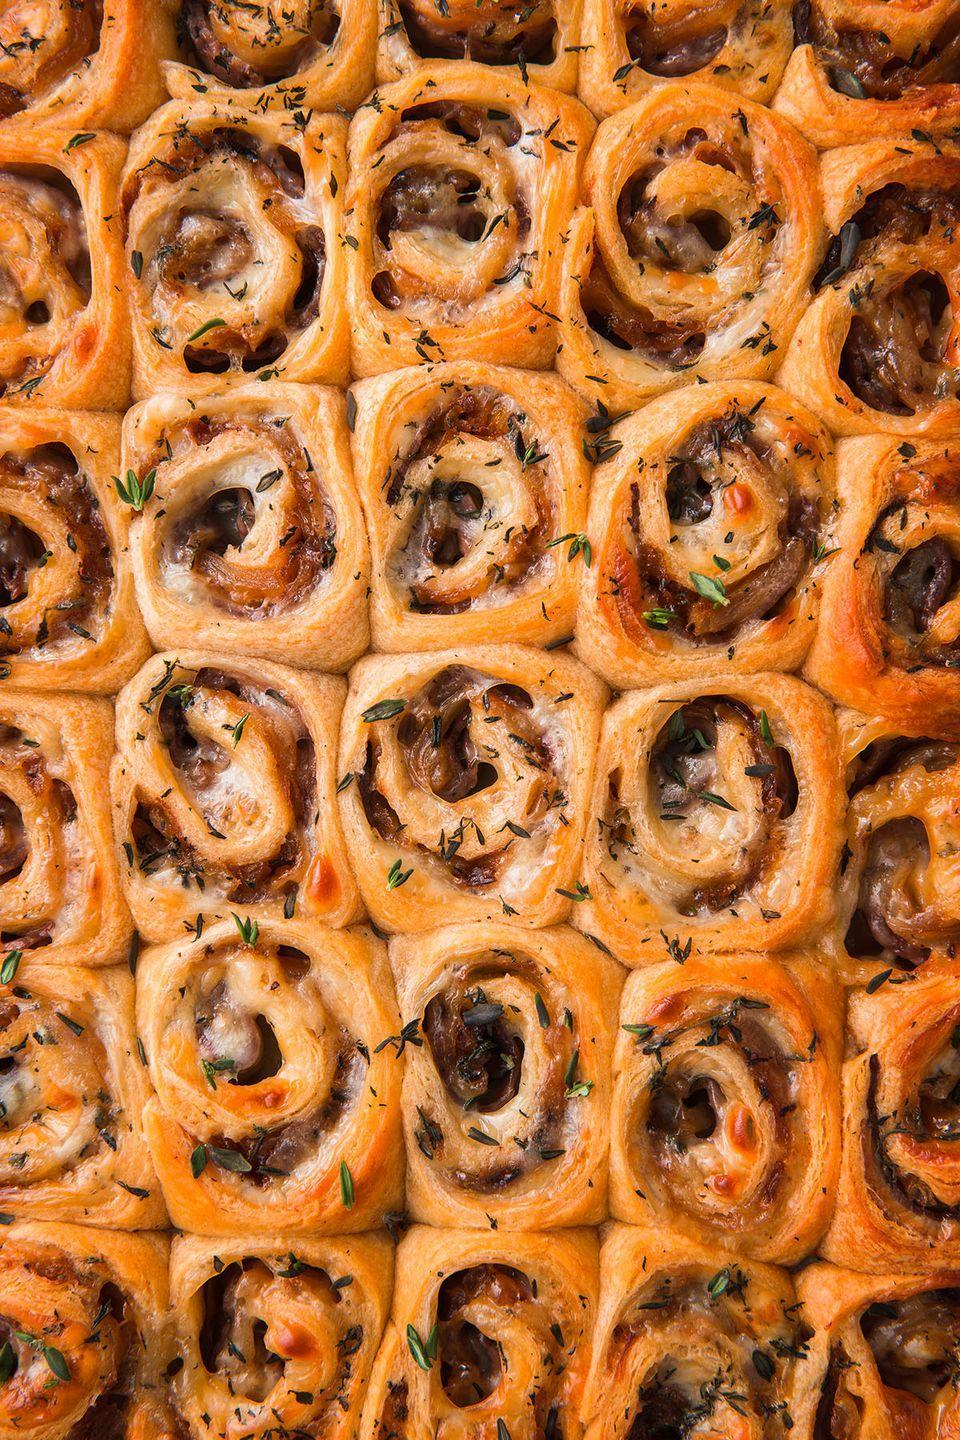 """<p>This is how we roll.</p><p>Get the recipe from <a href=""""https://www.delish.com/cooking/recipe-ideas/recipes/a52278/french-dip-roll-ups-recipe/"""" rel=""""nofollow noopener"""" target=""""_blank"""" data-ylk=""""slk:Delish"""" class=""""link rapid-noclick-resp"""">Delish</a>. </p>"""